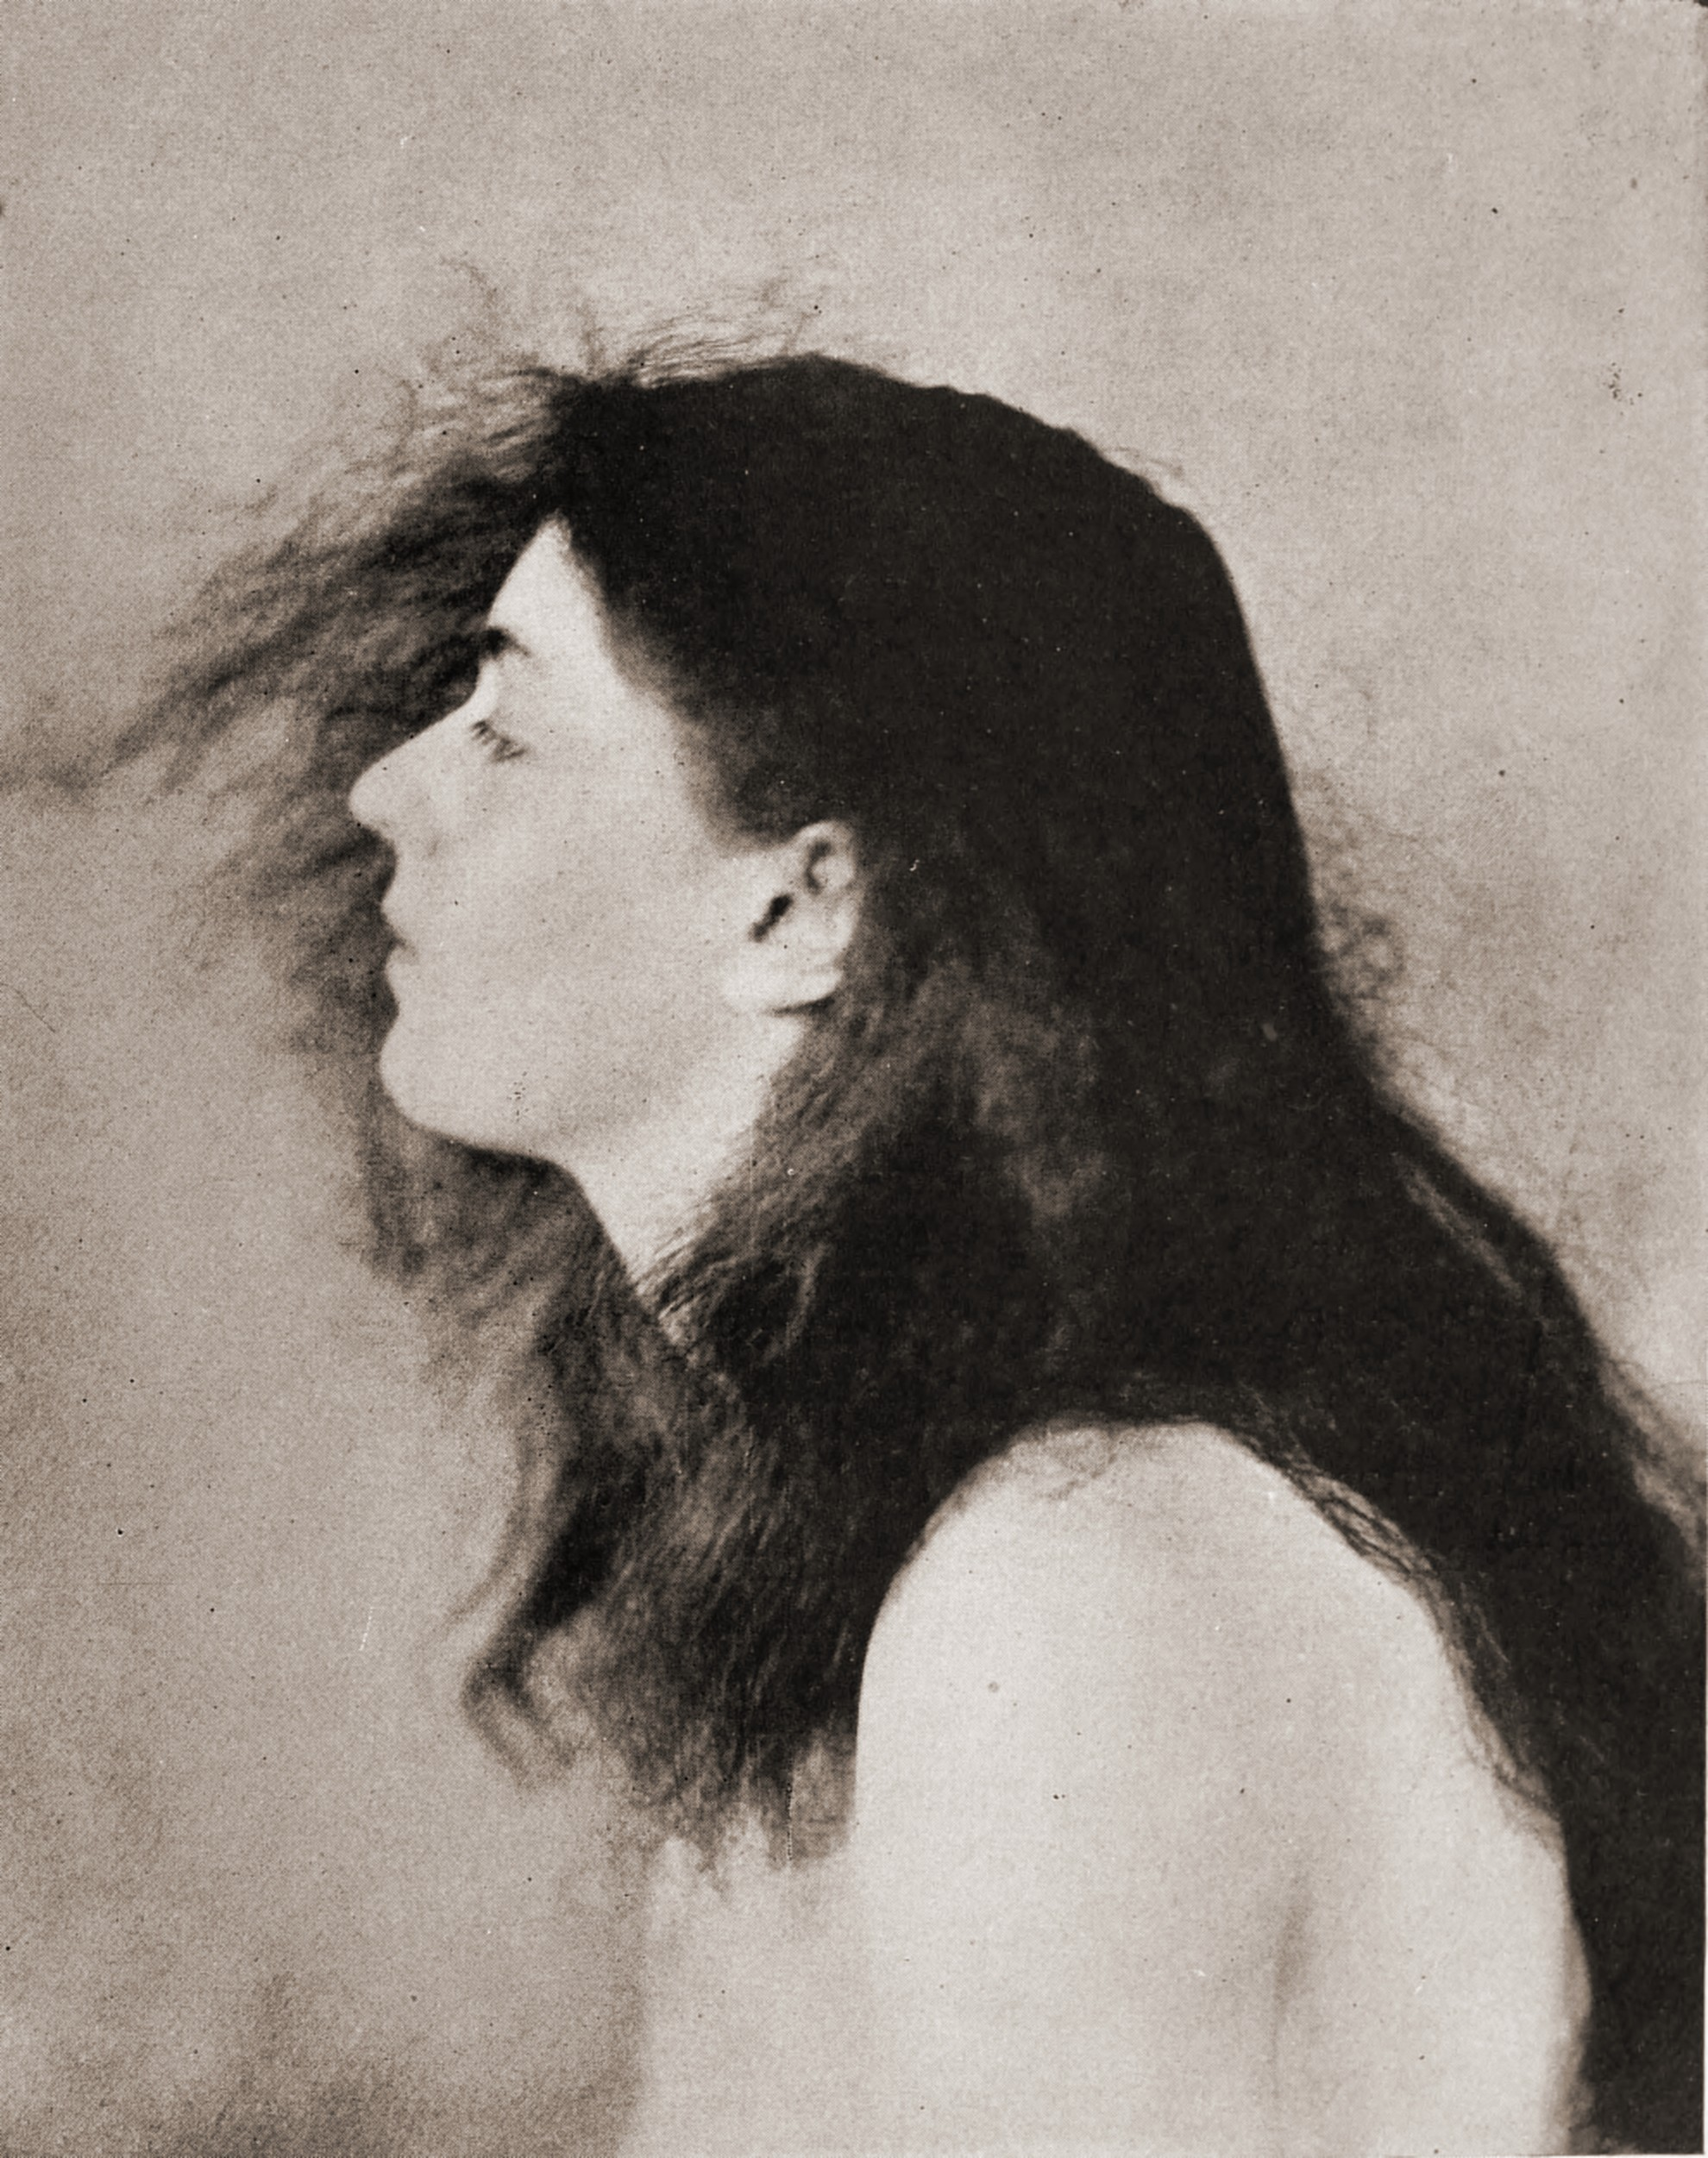 A study in black and white by Robert Wilson Shufeldt about 1923